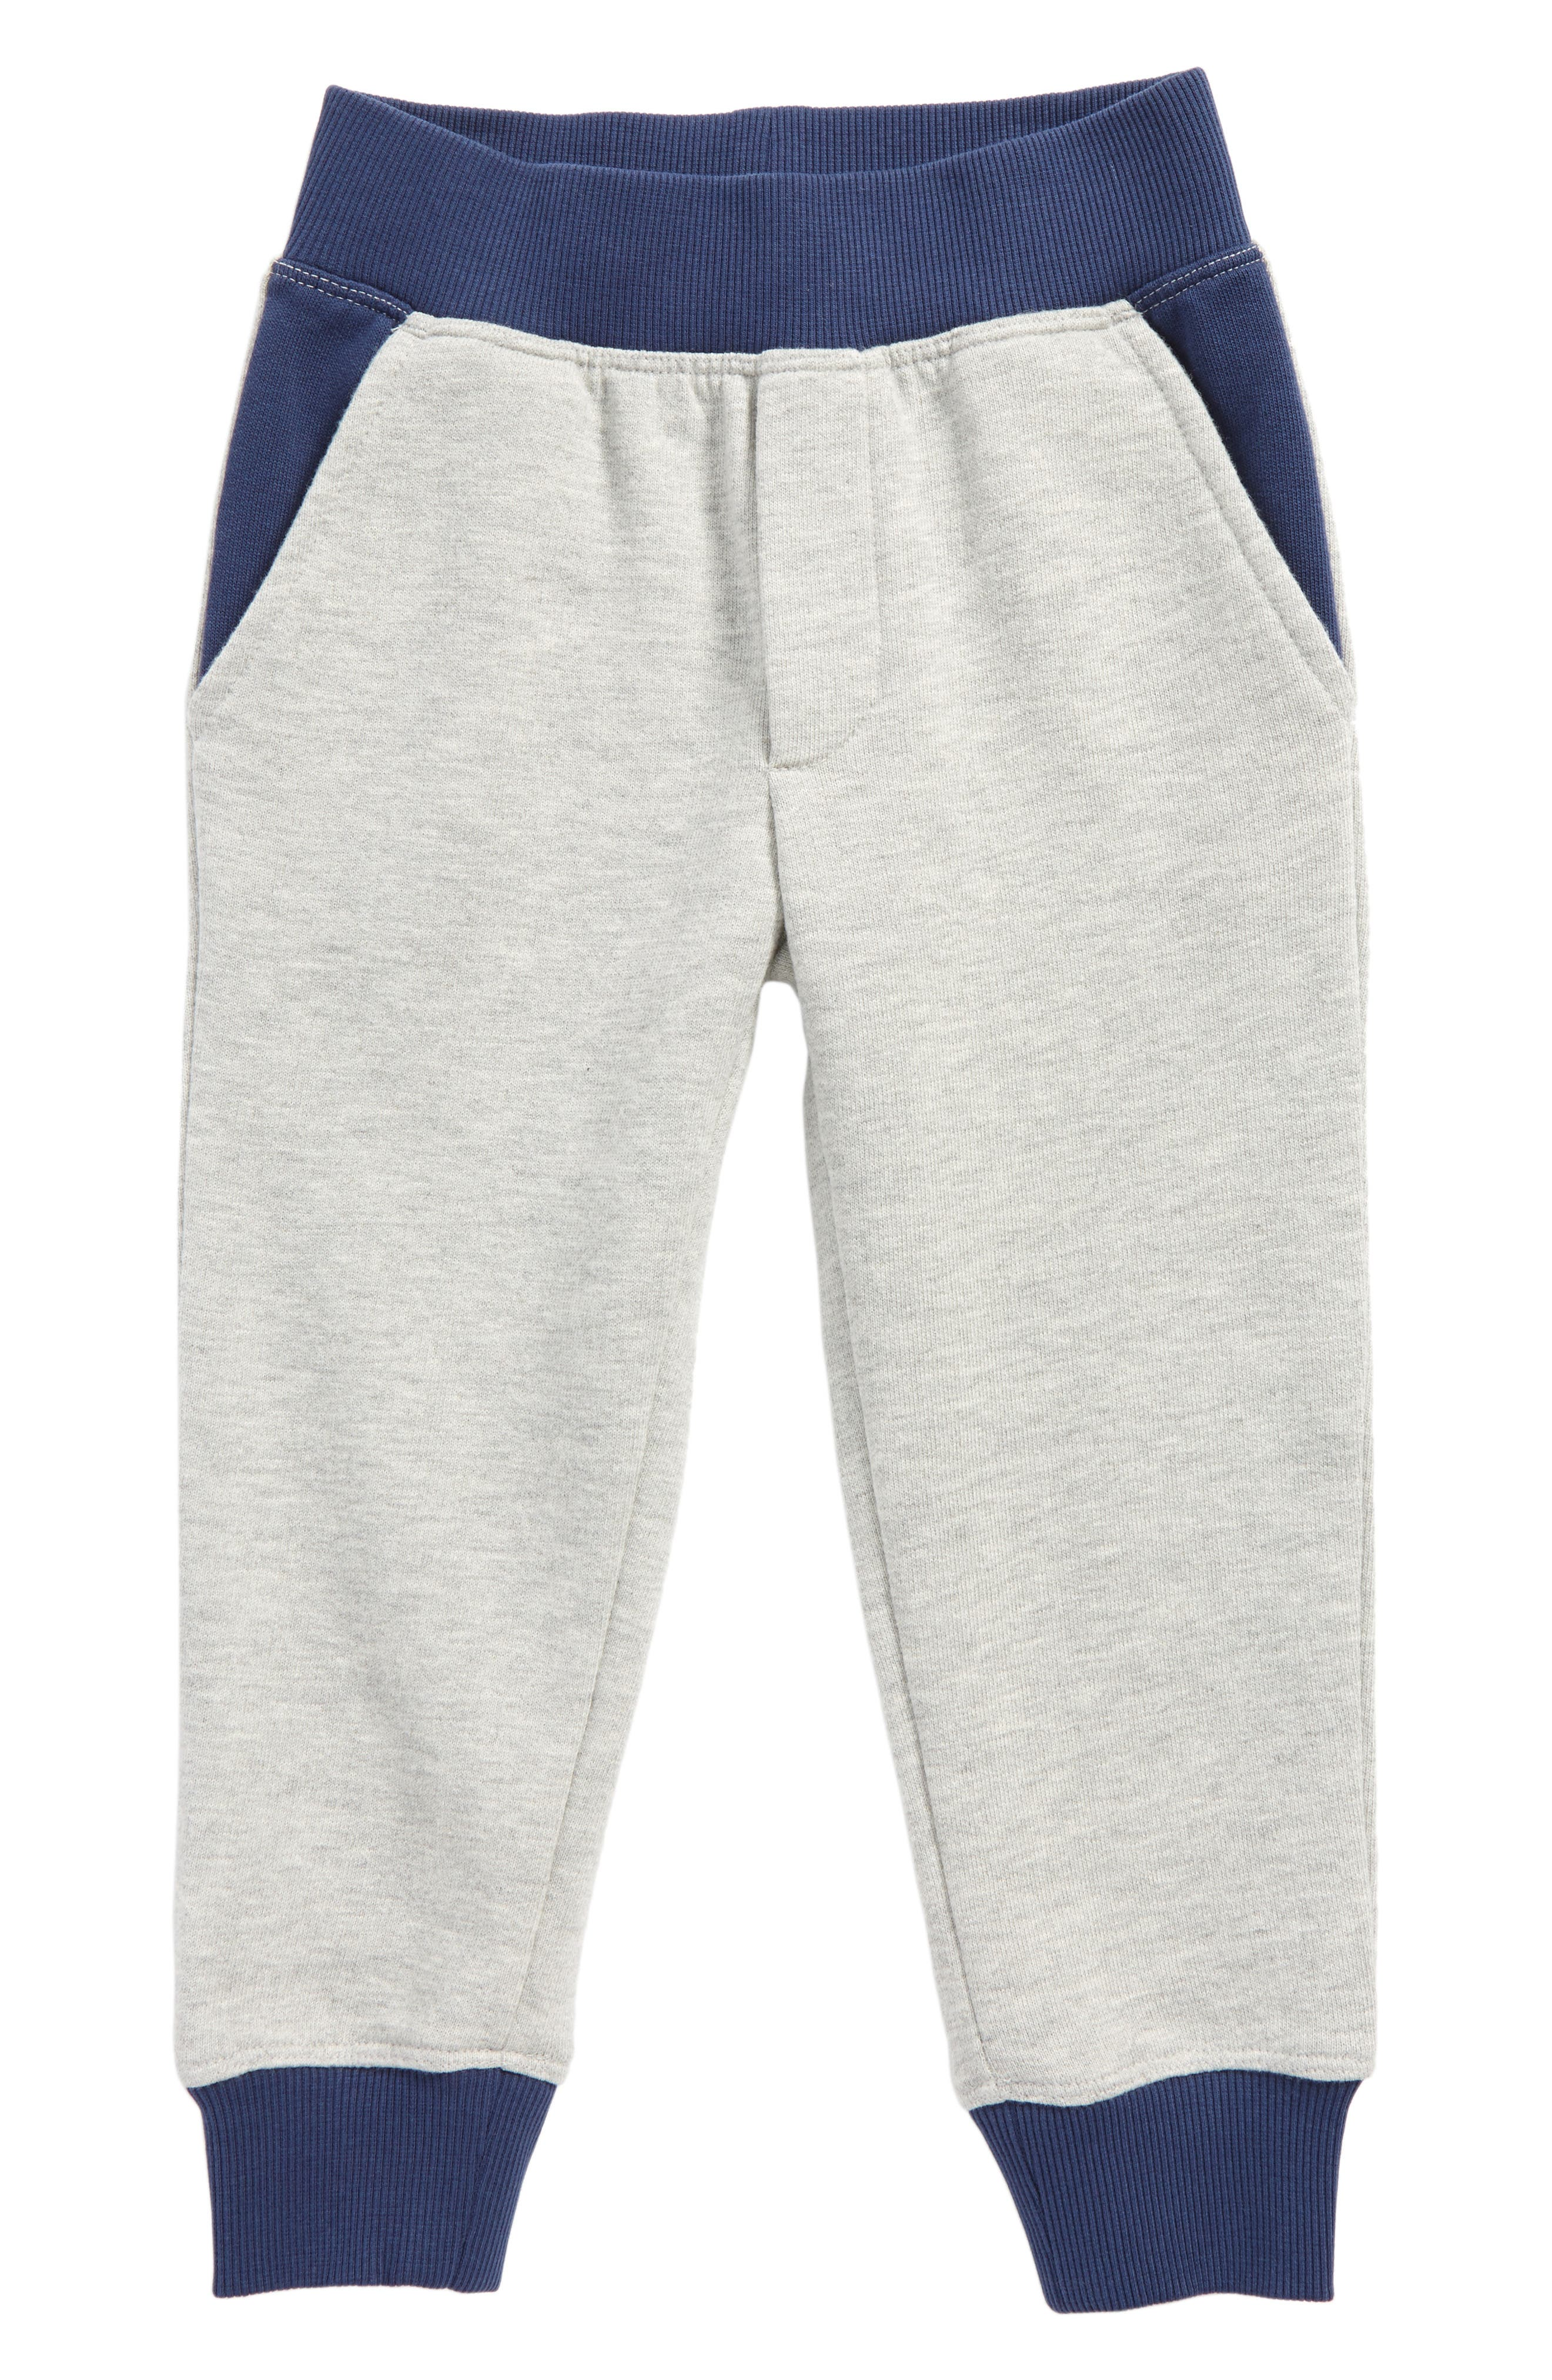 Colorblock Jogger Pants,                             Main thumbnail 1, color,                             031